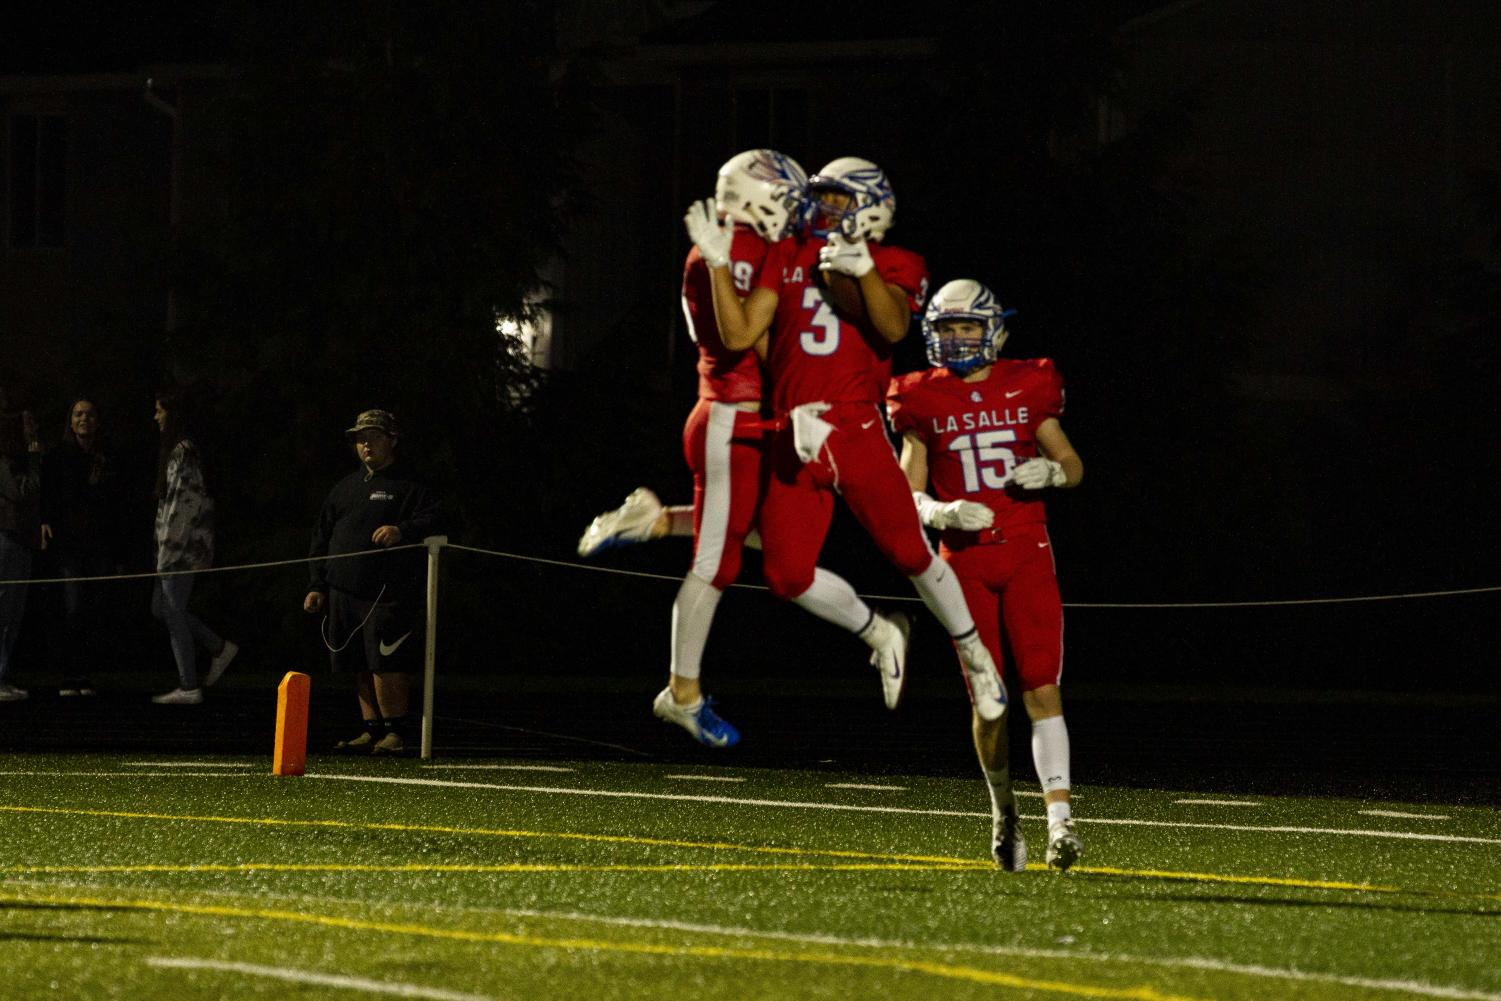 Junior+James+Menor+%283%29+scores+a+touchdown+and+celebrates+with+teammates.